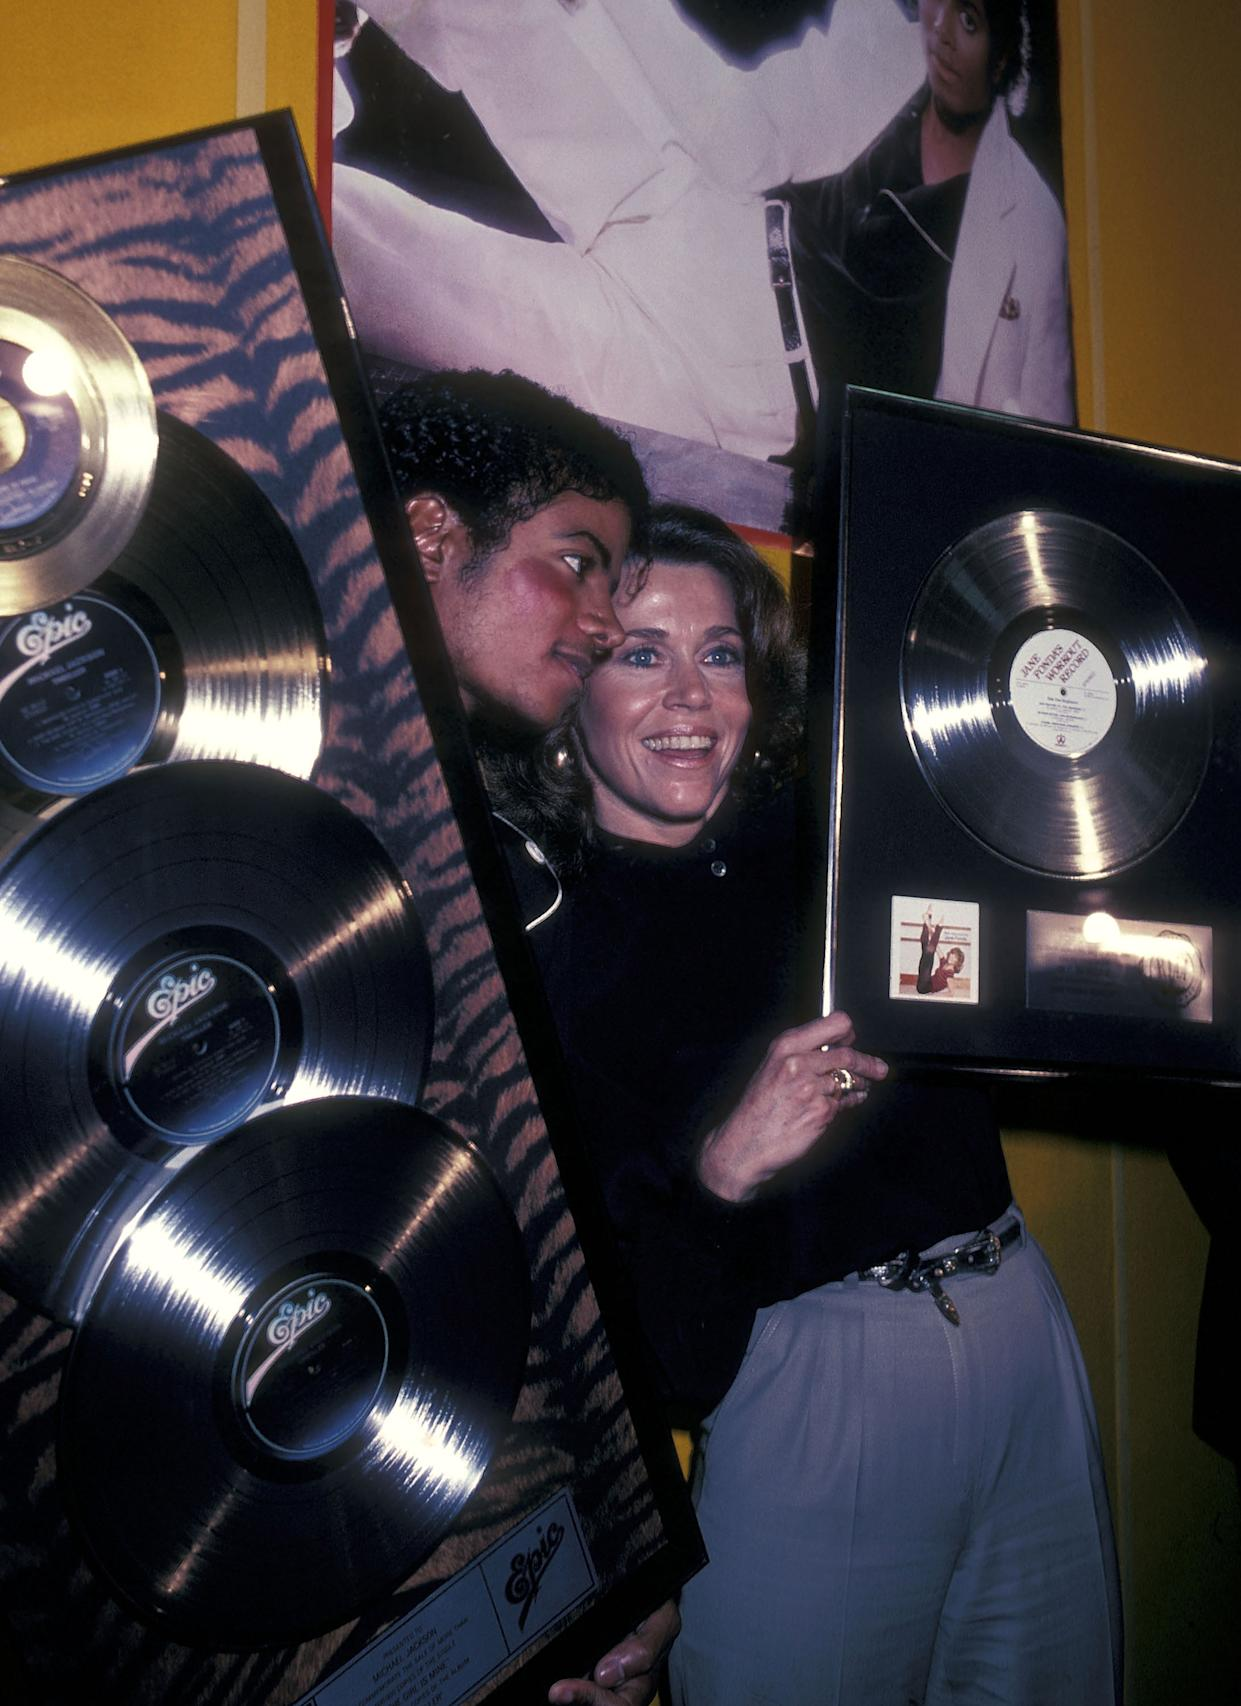 """Michael Jackson and actress Jane Fonda attend the Presentation of Michael Jackson's """"Thriller"""" Album Certified Platinum on February 25, 1983 at CBS Records in Century City, California. (Photo by Ron Galella/Ron Galella Collection via Getty Images)"""